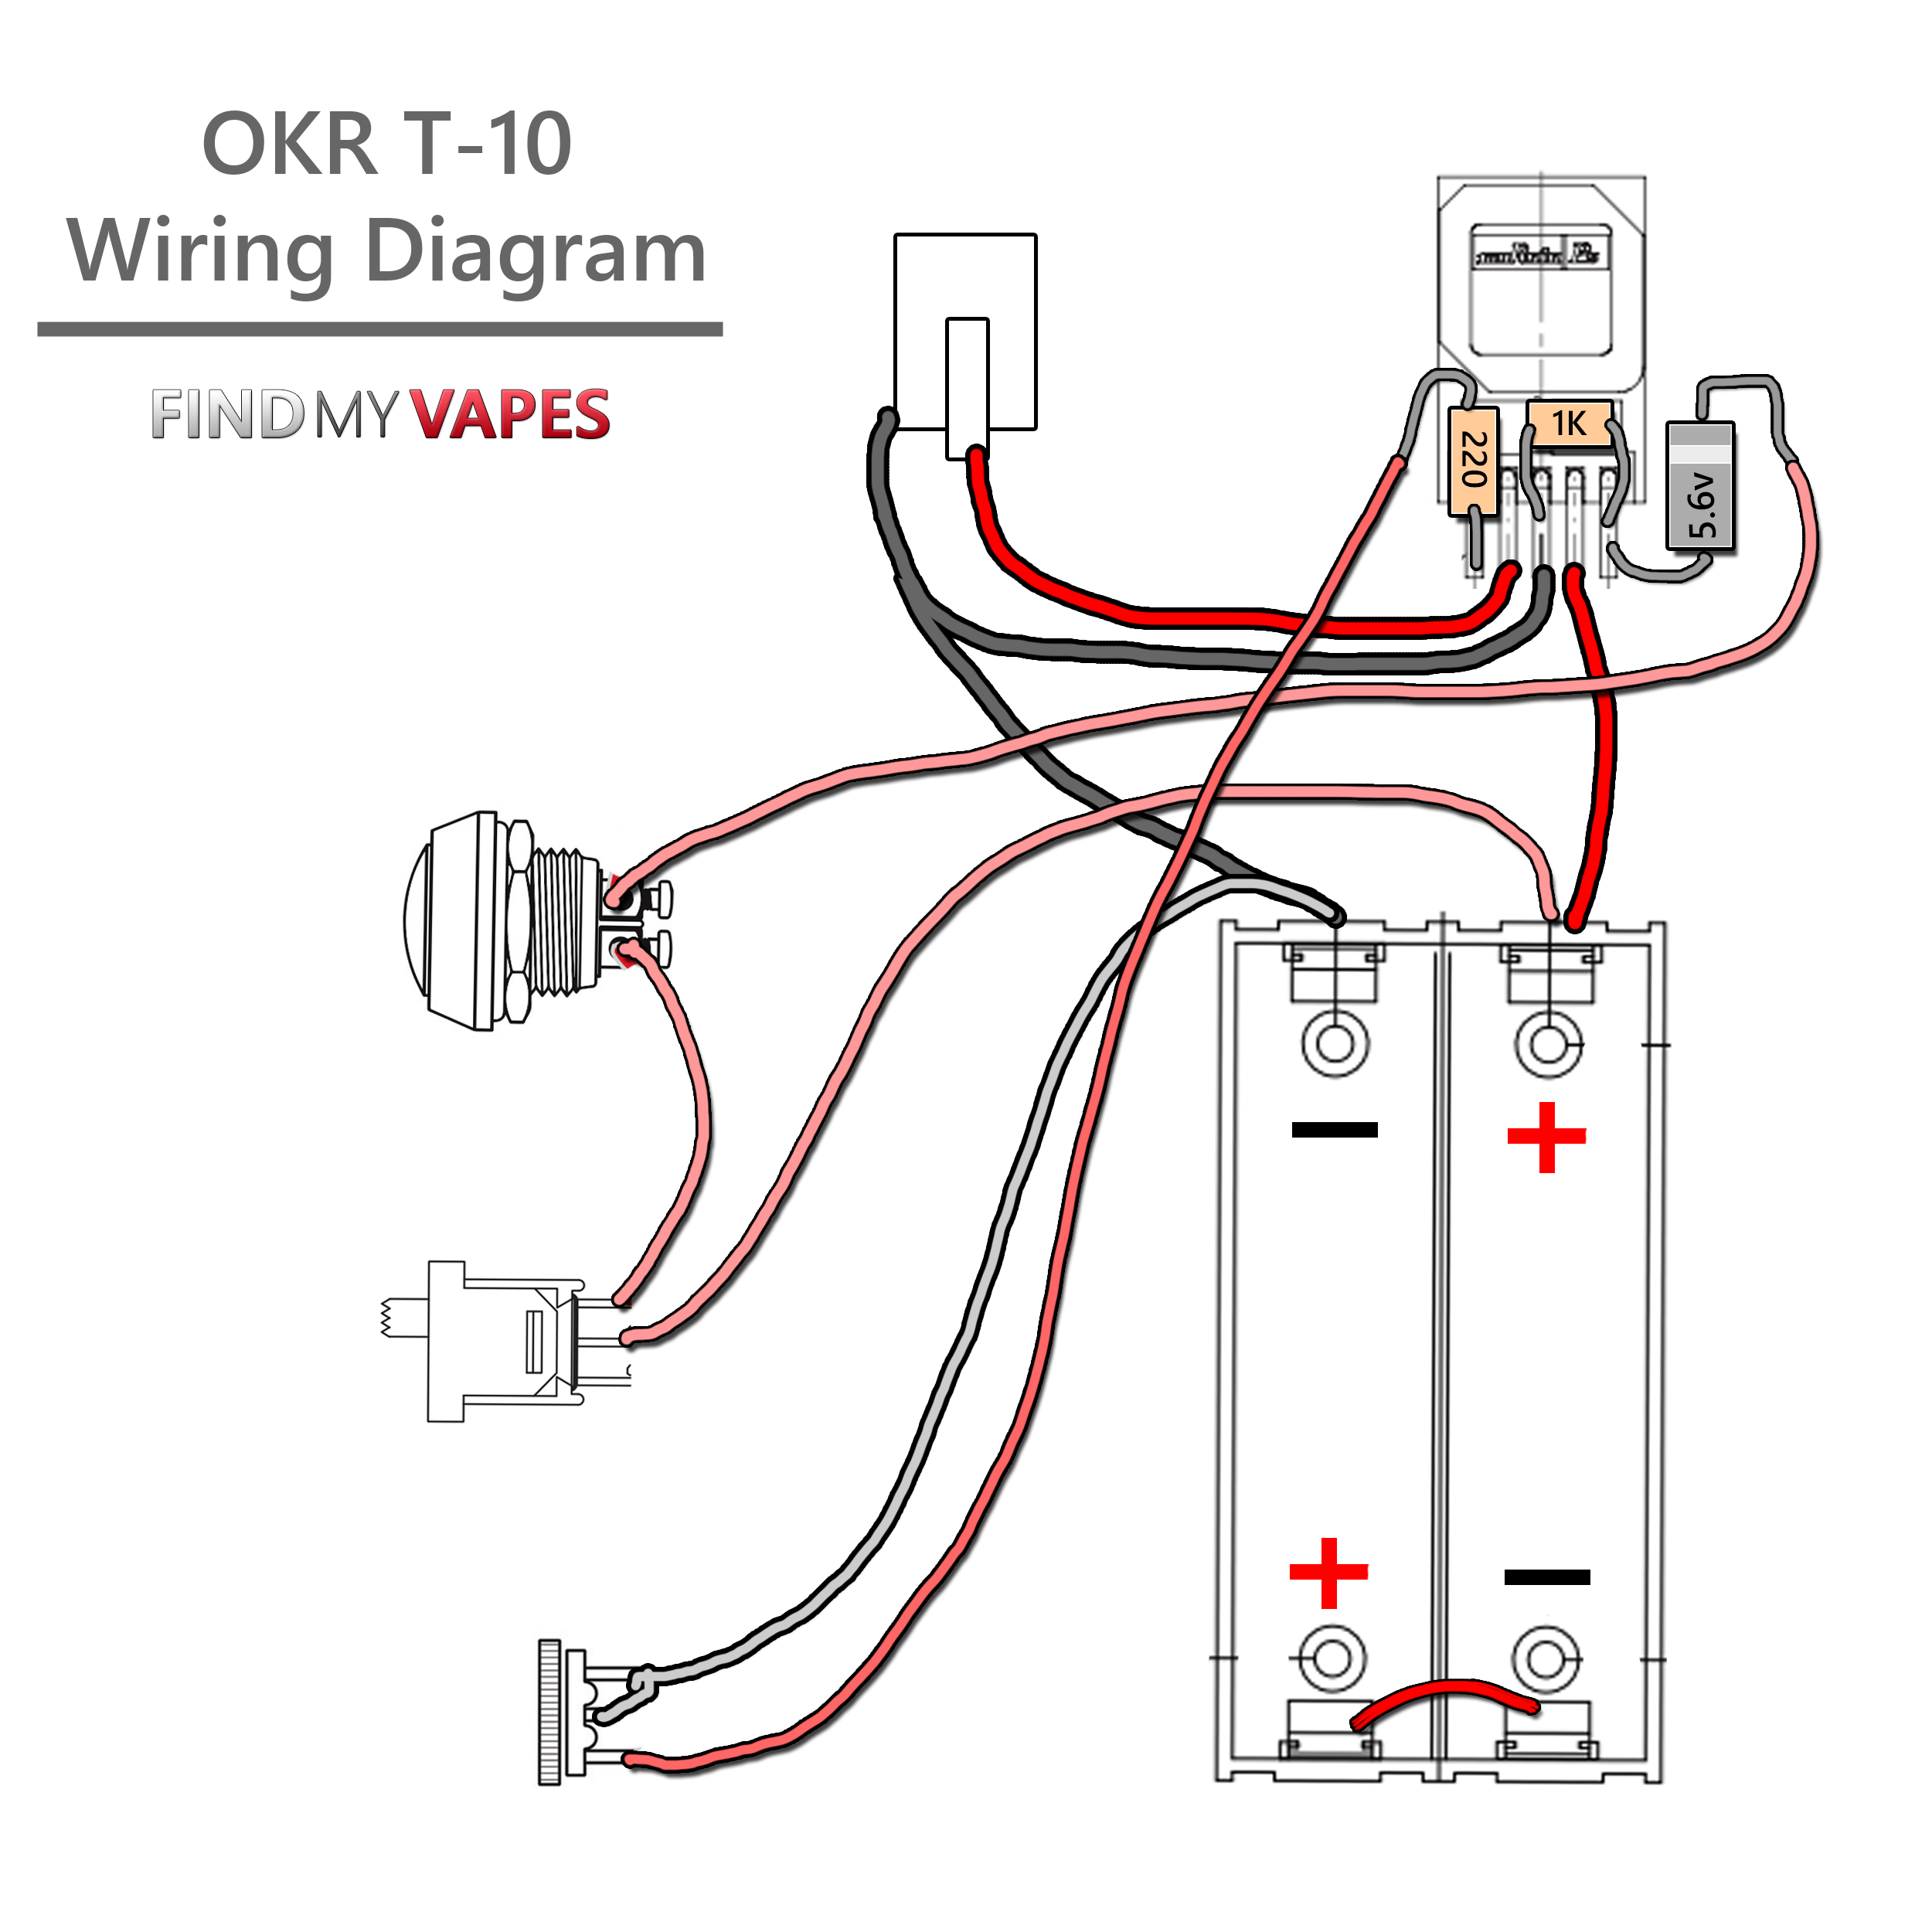 43f1f809f510551e90a2c59cd4315821 findmyvapes com how to build an okr box mod tutorial series box mod wiring diagram at gsmx.co